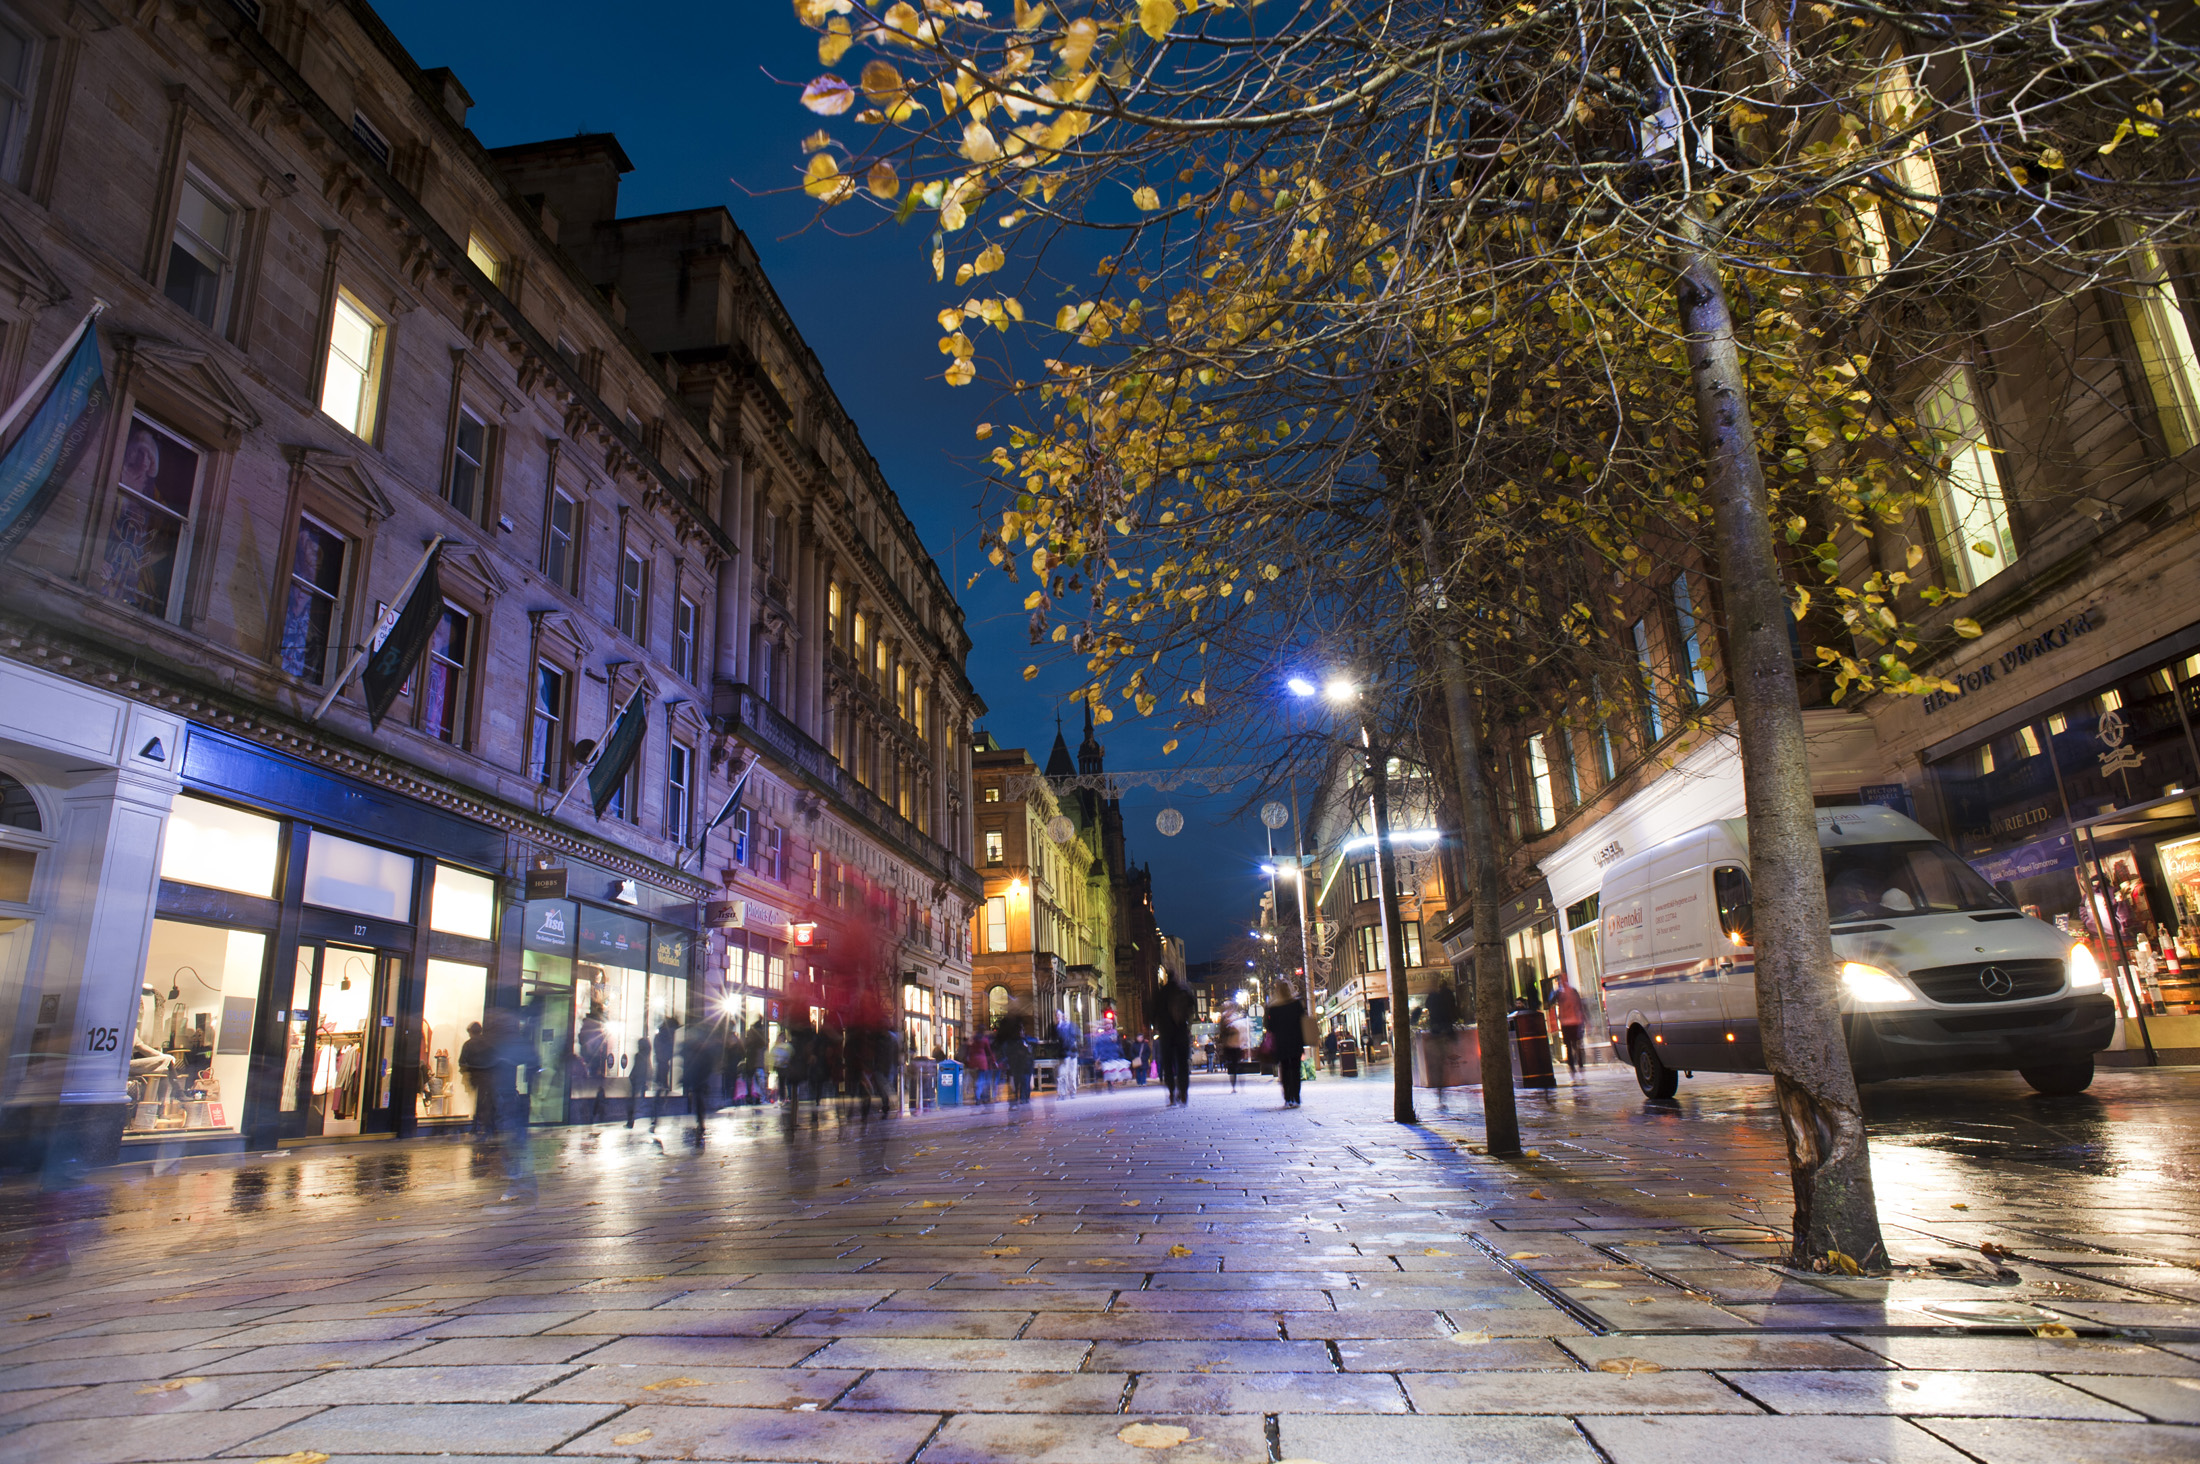 Commercial Property Glasgow Bairds Brae